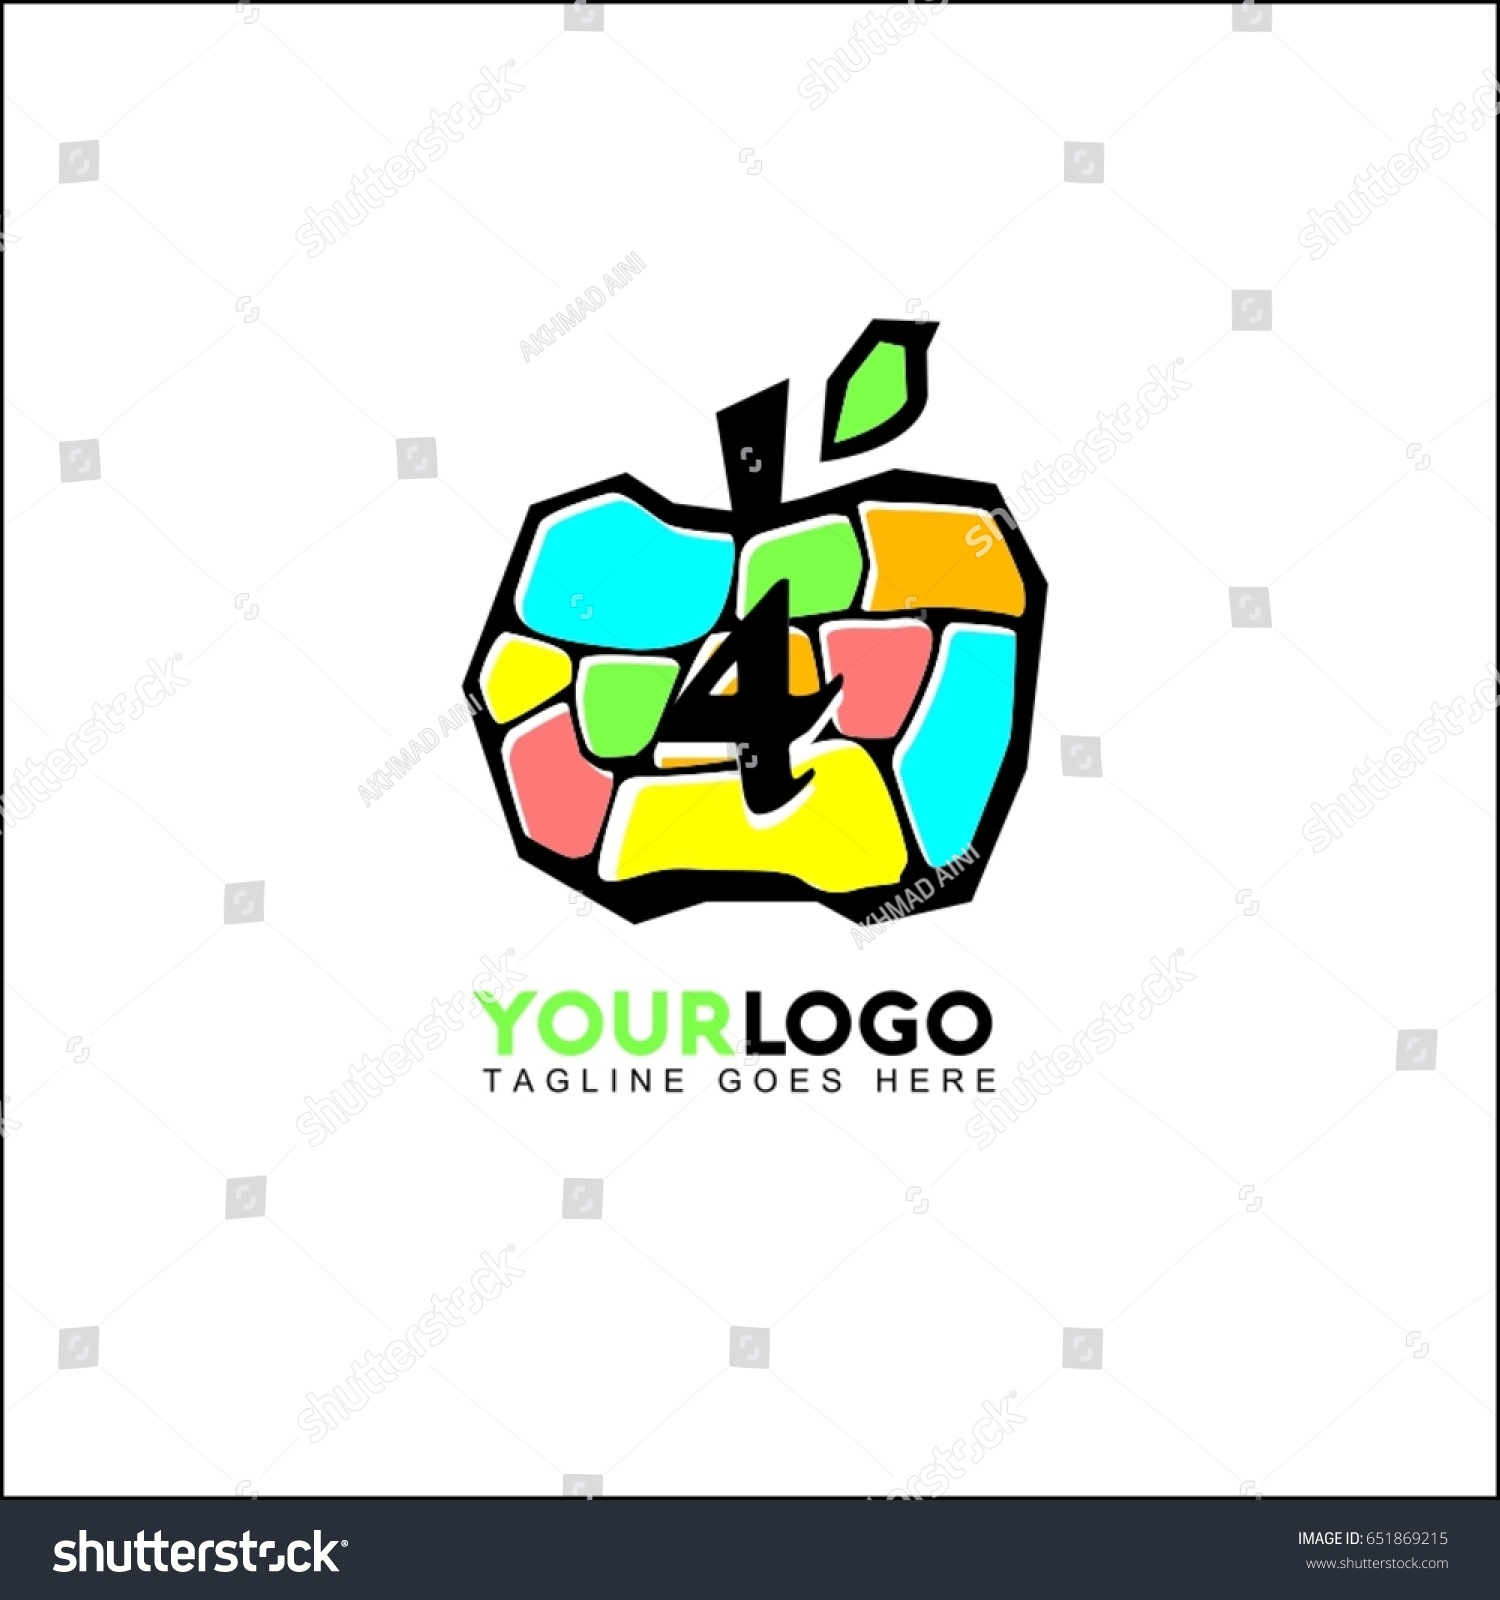 4 Letter Fruit Vegetables Logo Fruit Stock Vector (Royalty Free